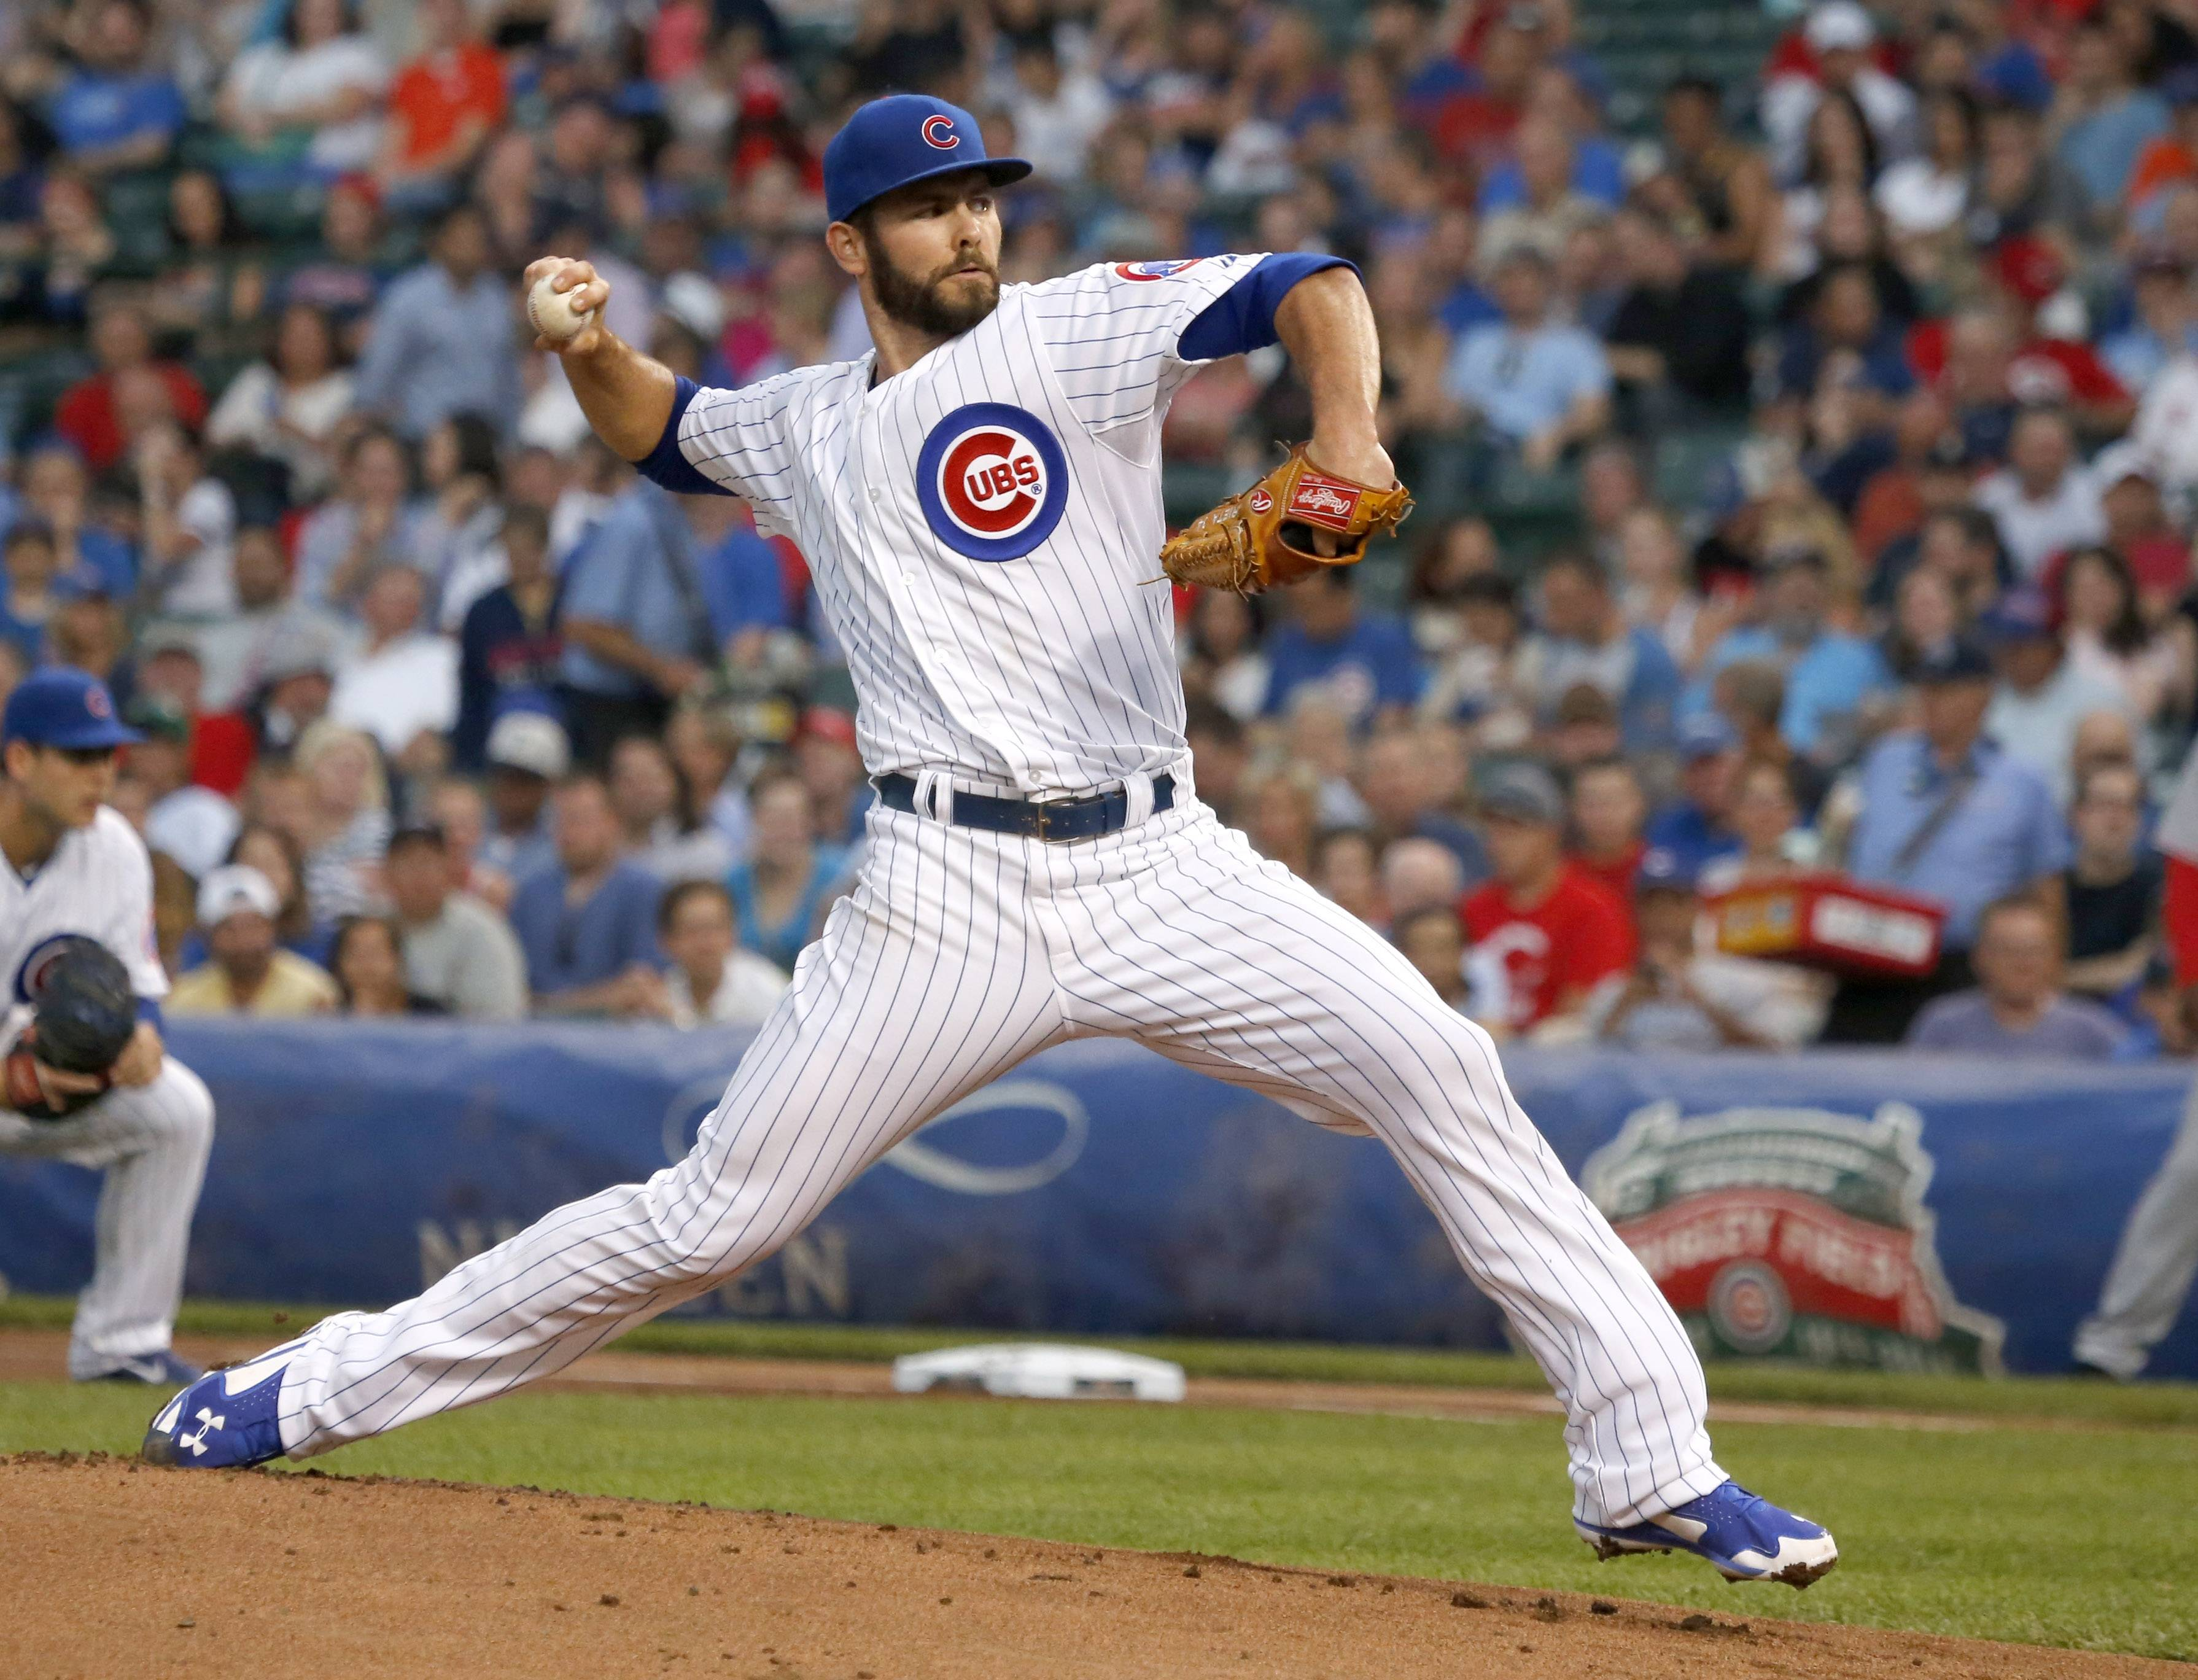 Cubs starting pitcher Jake Arrieta took a perfect game into the seventh inning Tuesday night at Wrigley Field. He allowed 2 runs on 3 hits in the seventh before being taken out of the game.